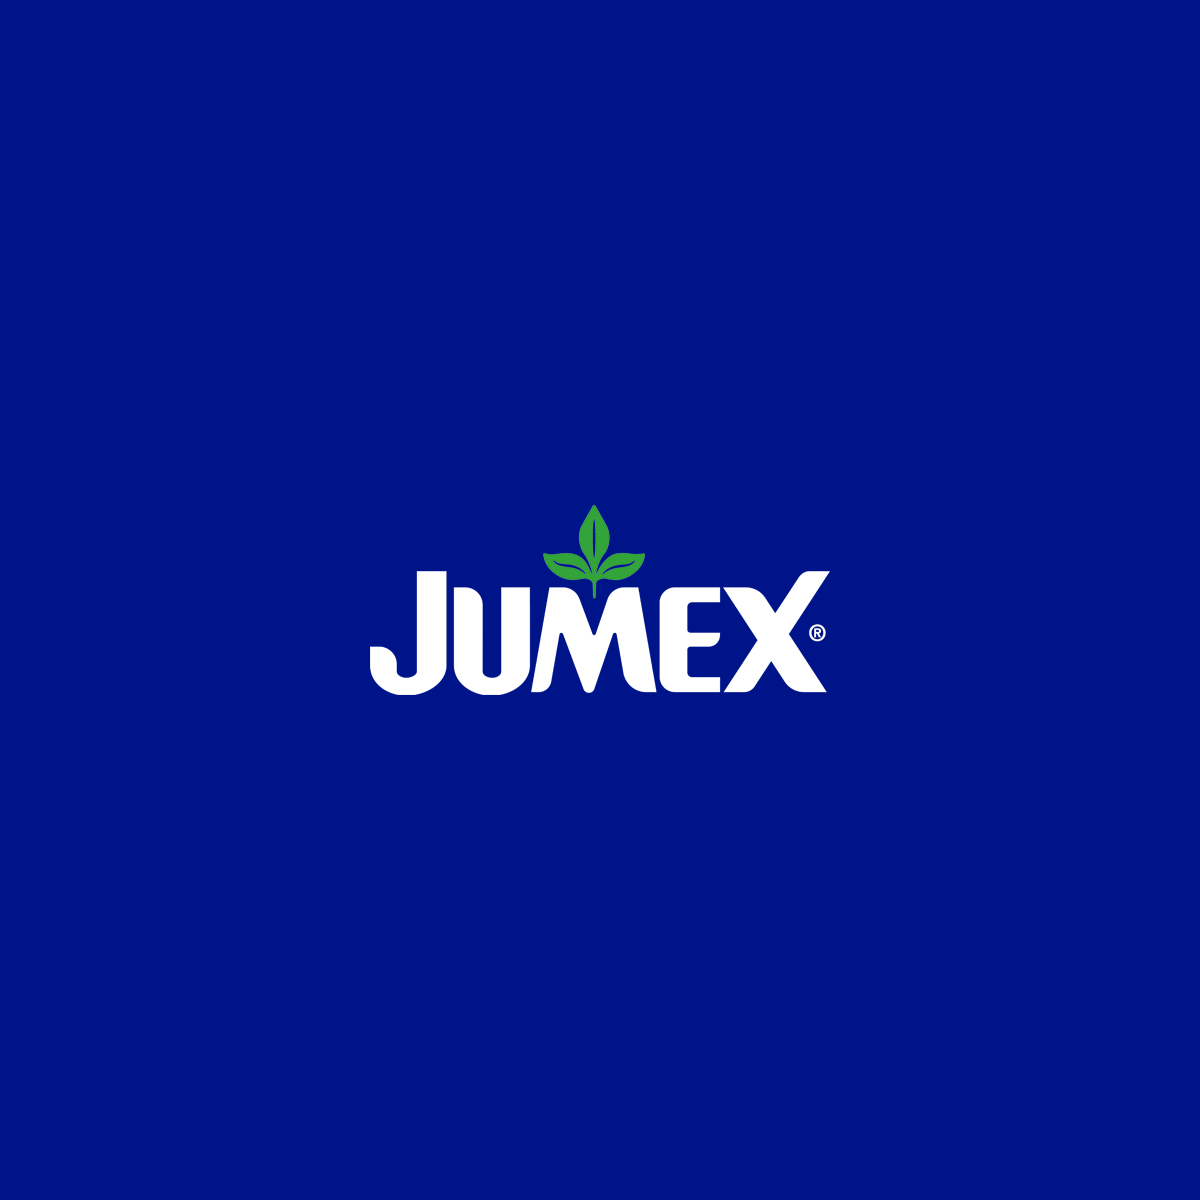 <br /> <b>Notice</b>:  Undefined variable: alt in <b>/services2/webpages/g/r/grupojumex.mx/public/wp-content/themes/Grupo Jumex WP Theme/template-parts/noticia-card.php</b> on line <b>12</b><br />